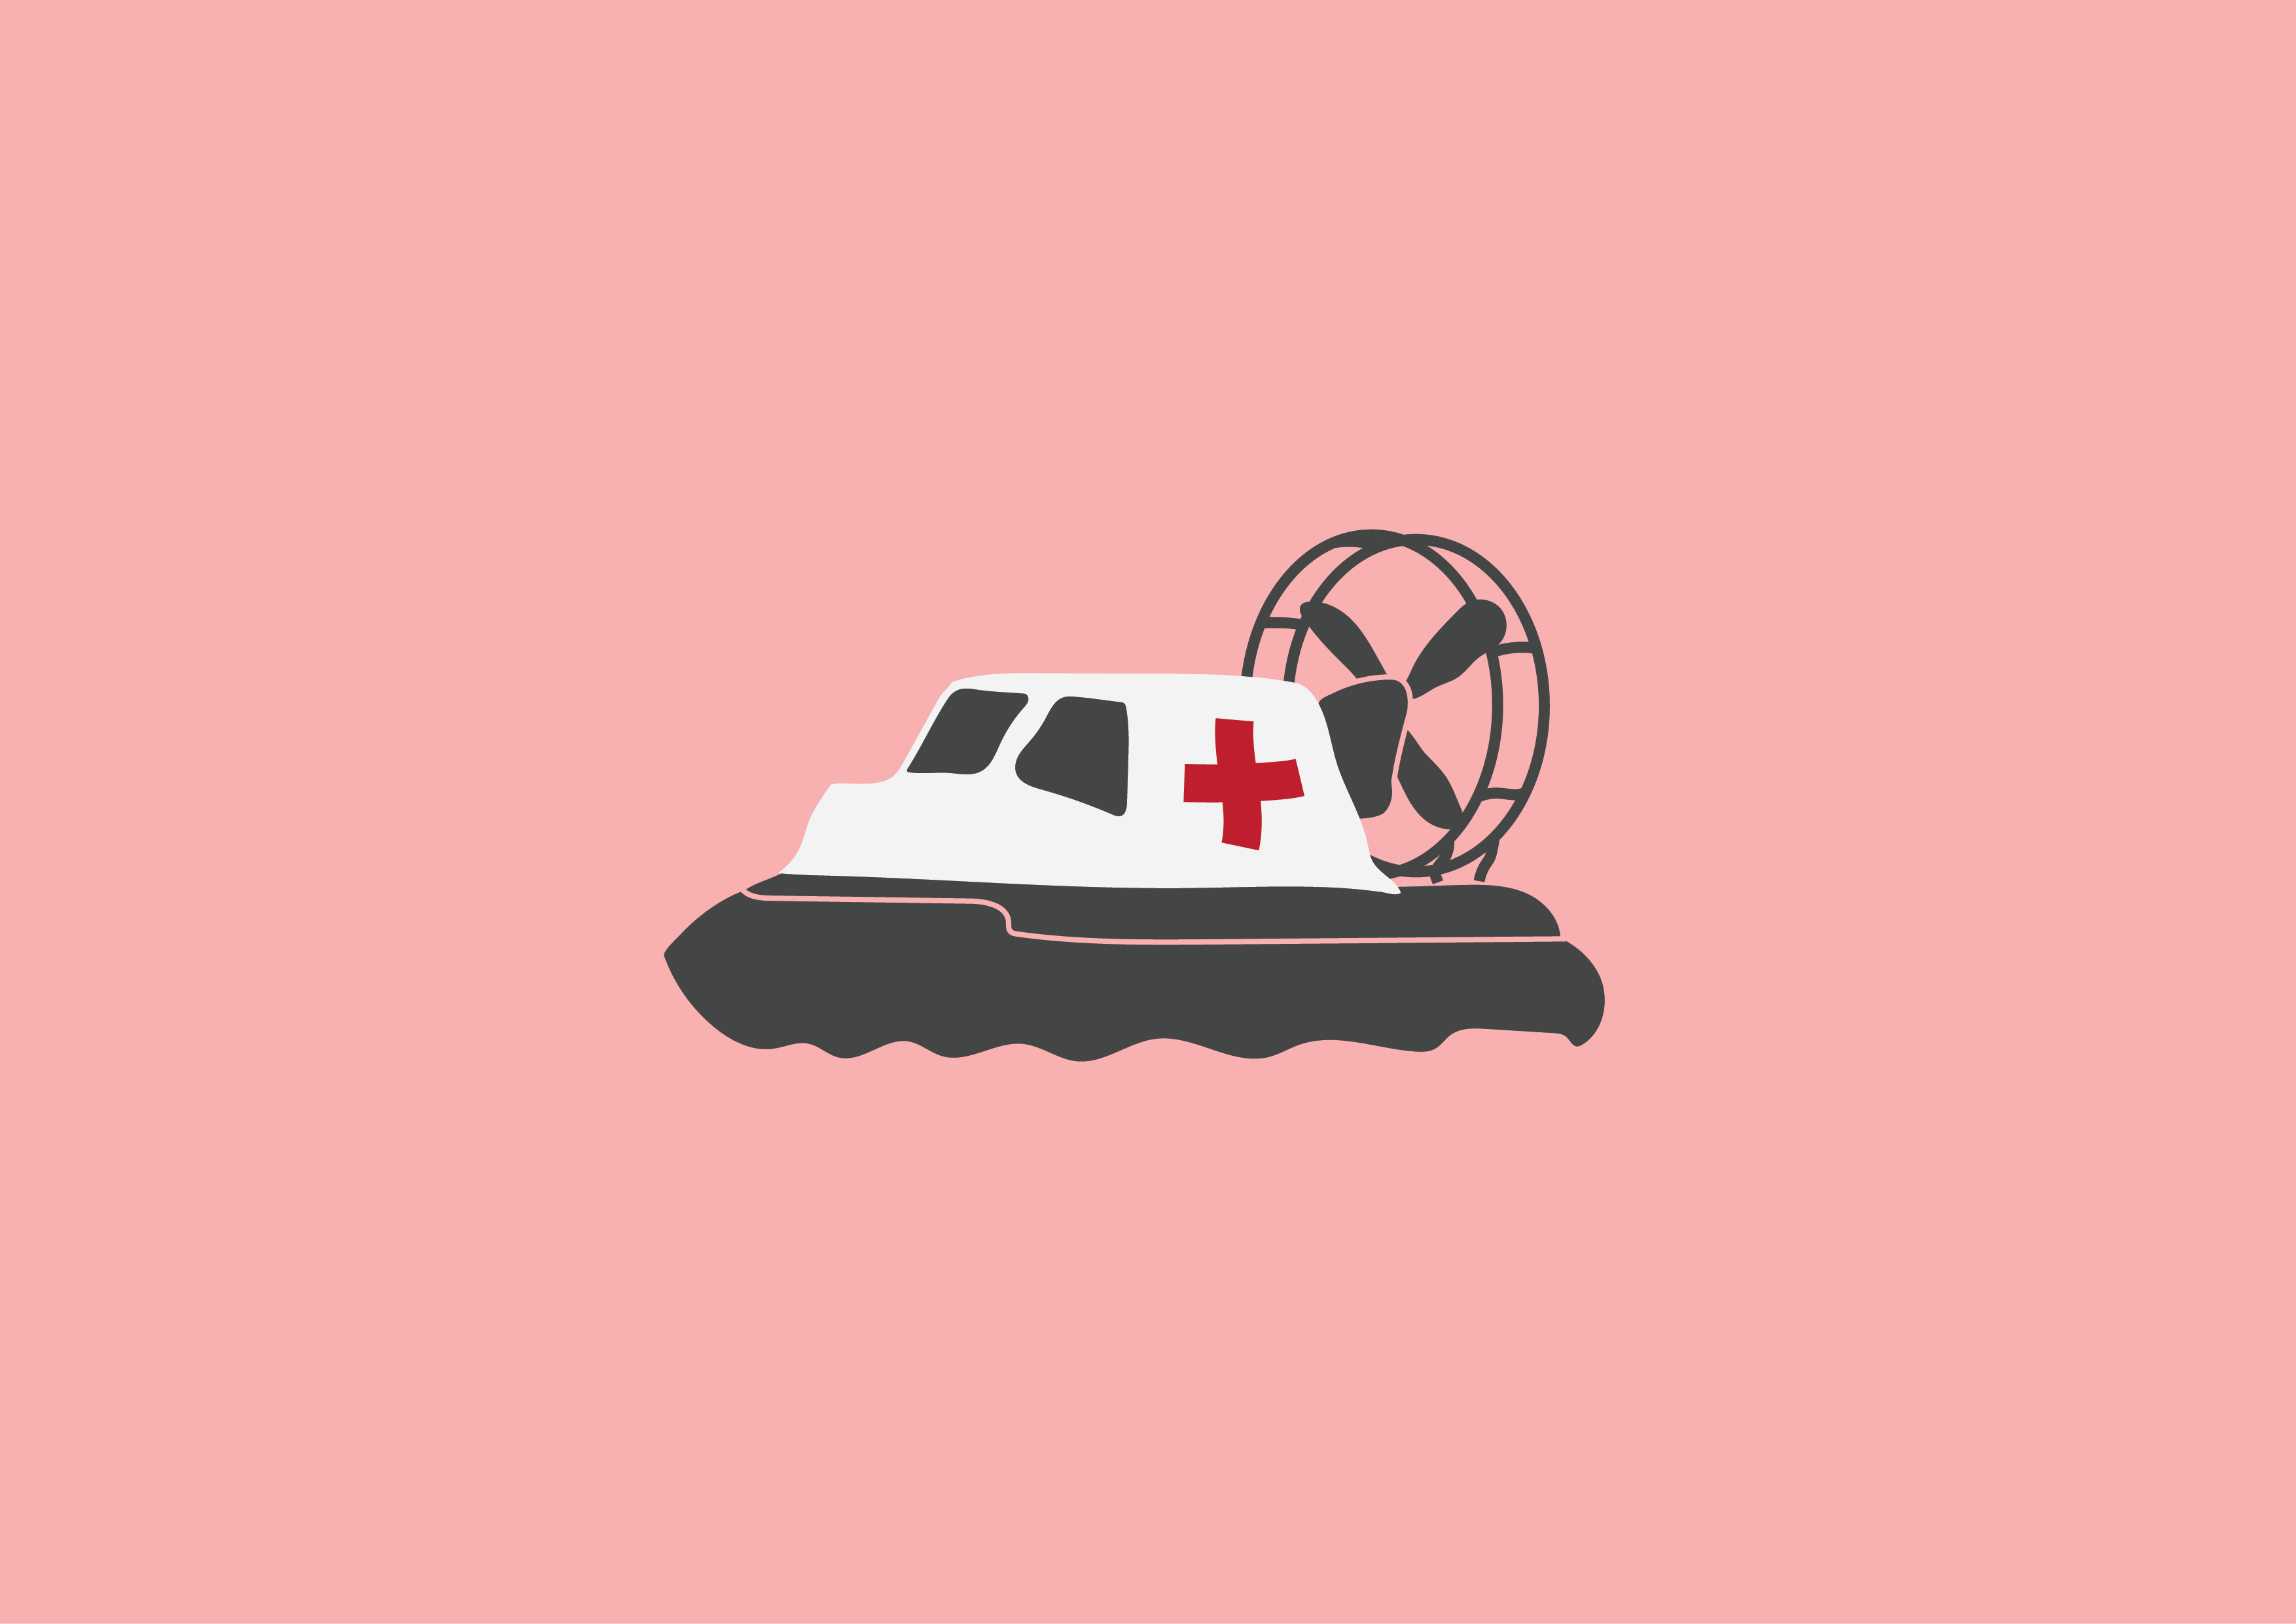 Drawing of a hovercraft with a red cross on it